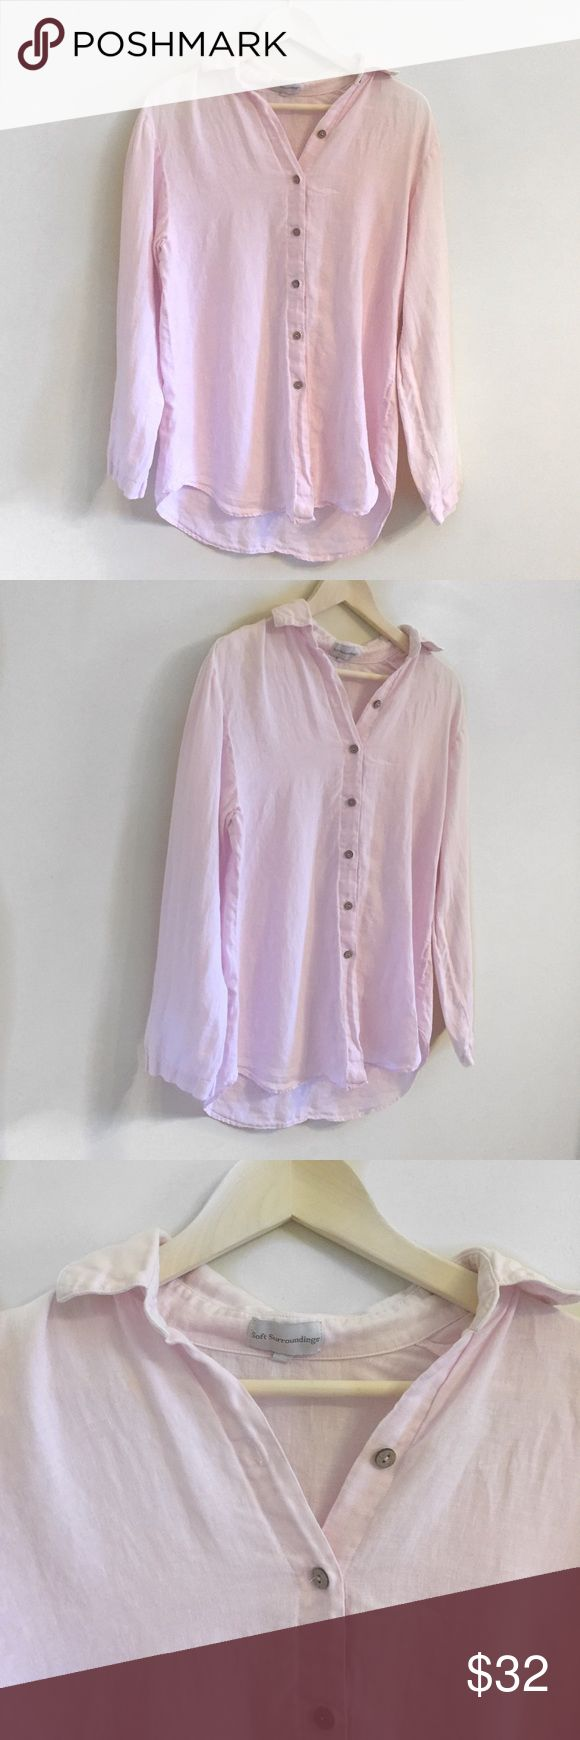 Soft Surroundings Pink Linen Button Down Size SM Outer Banks Button Front Shirt #973from Soft Surroundings. Pink linen button down size small.  Gently worn no flaws. Soft Surroundings Tops Button Down Shirts